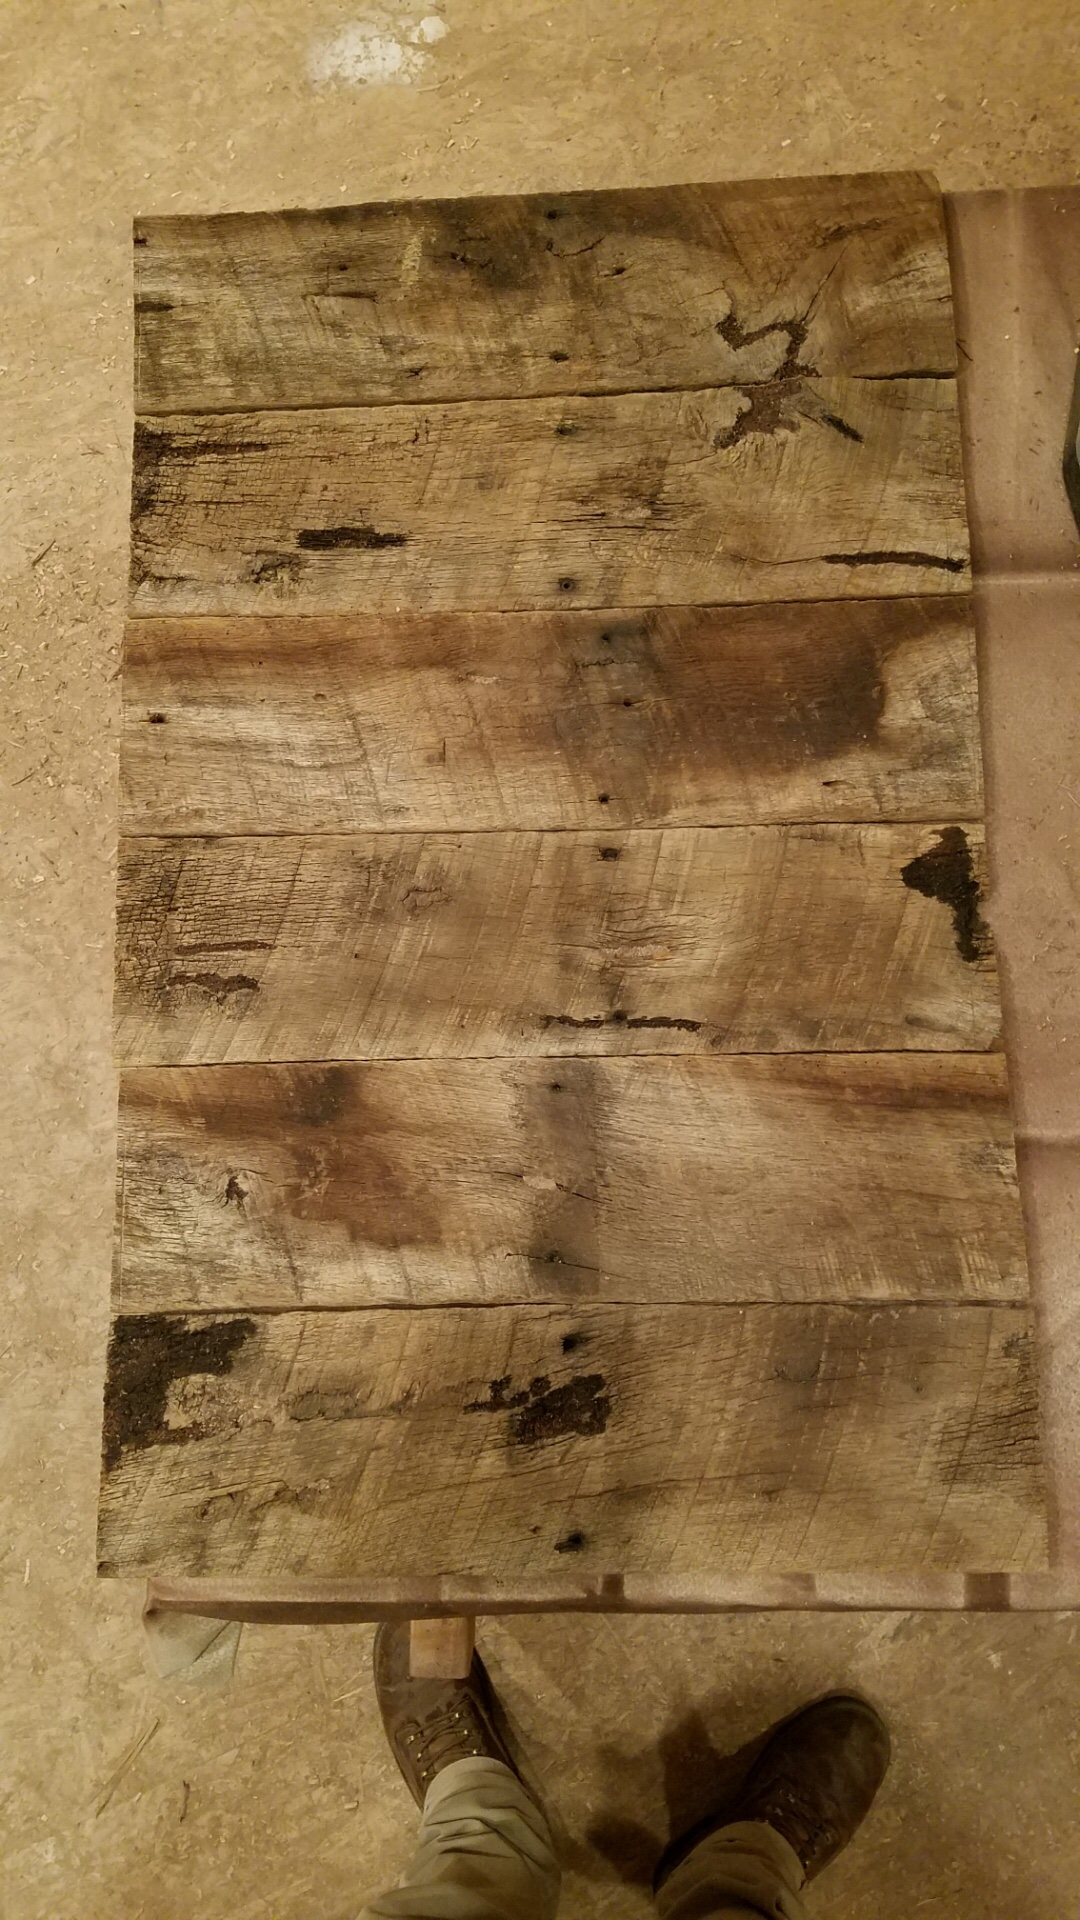 Reclaimed oak barn wood with saw tooth marks, knots and stains.